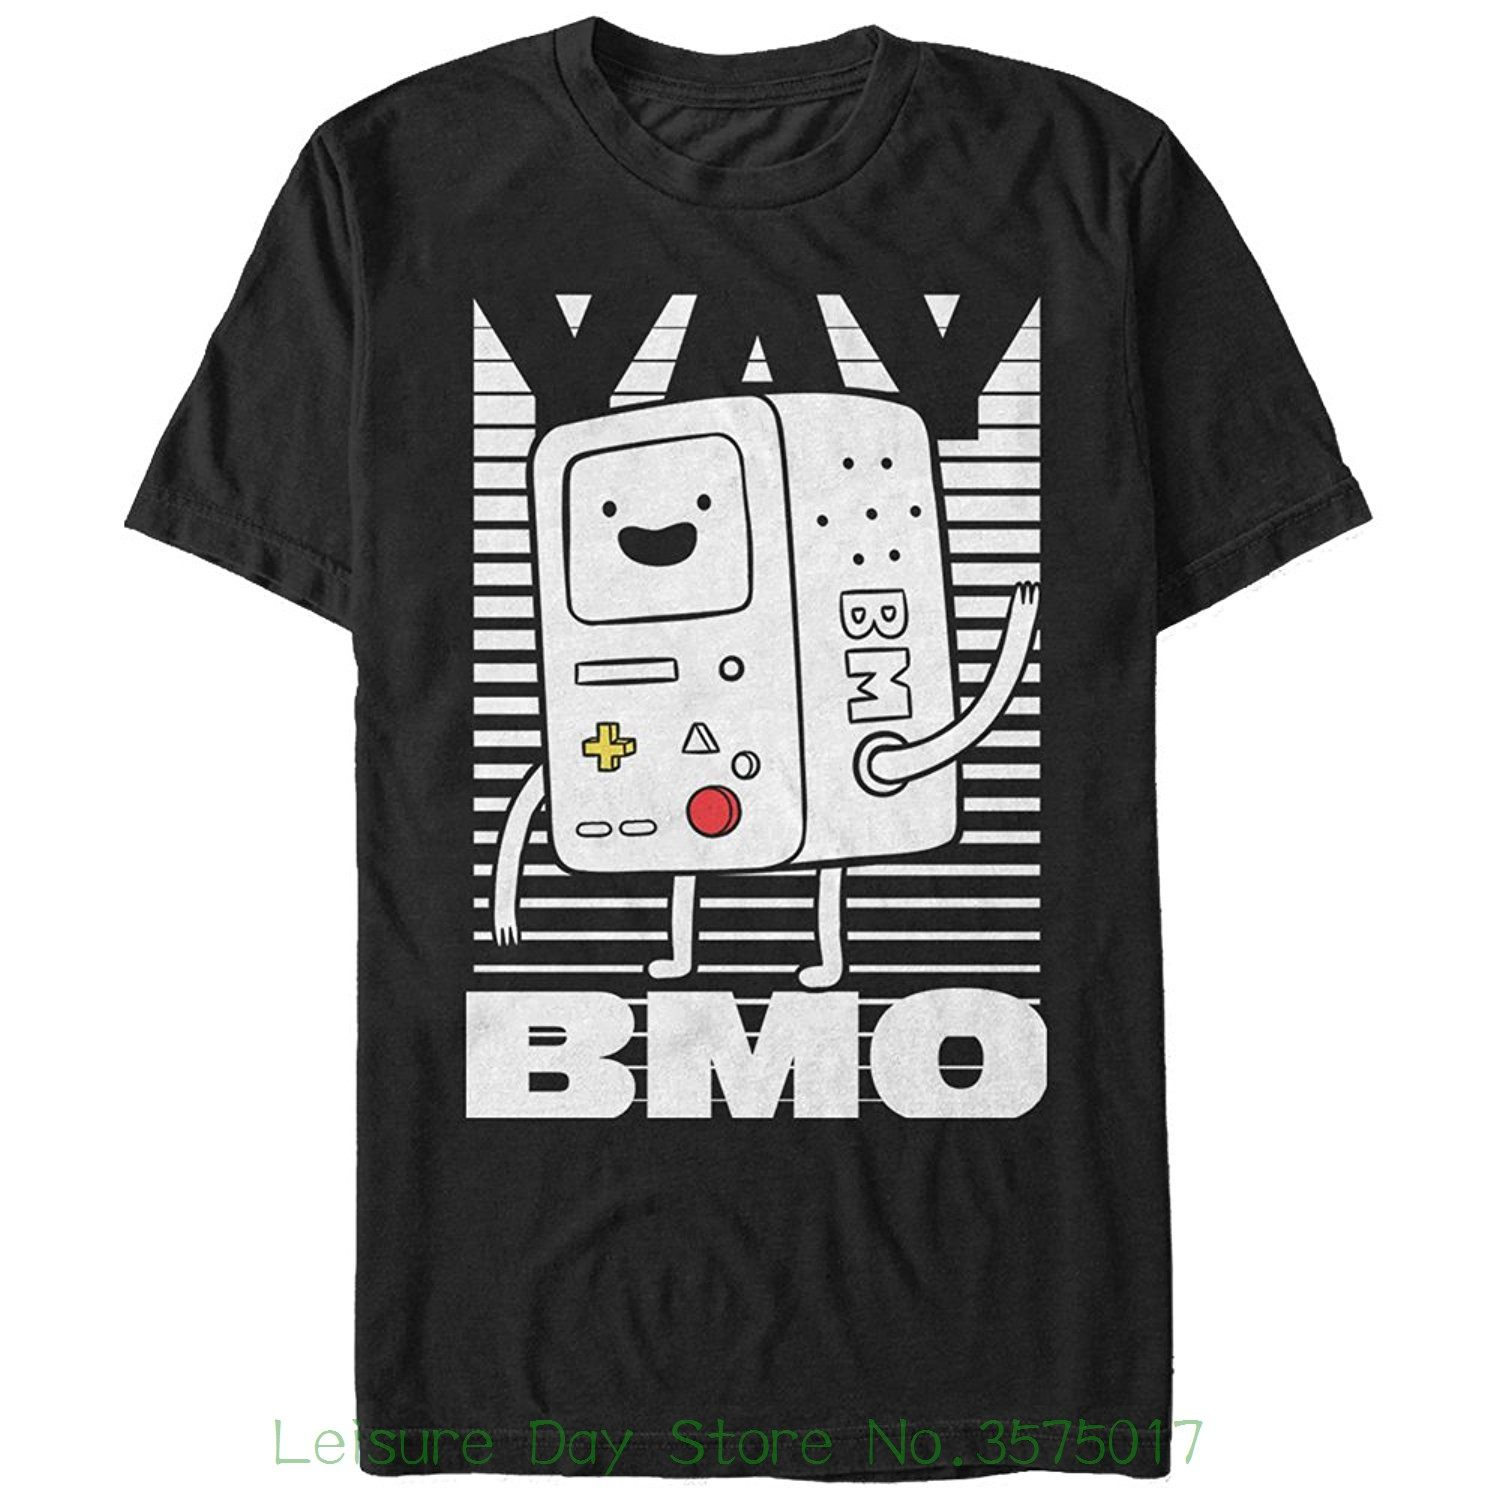 17d99815b55 T-shirts 2018 Brand Clothes Slim Fit Printing Fifth Sun Adventure Time Yay  Bmo Mens